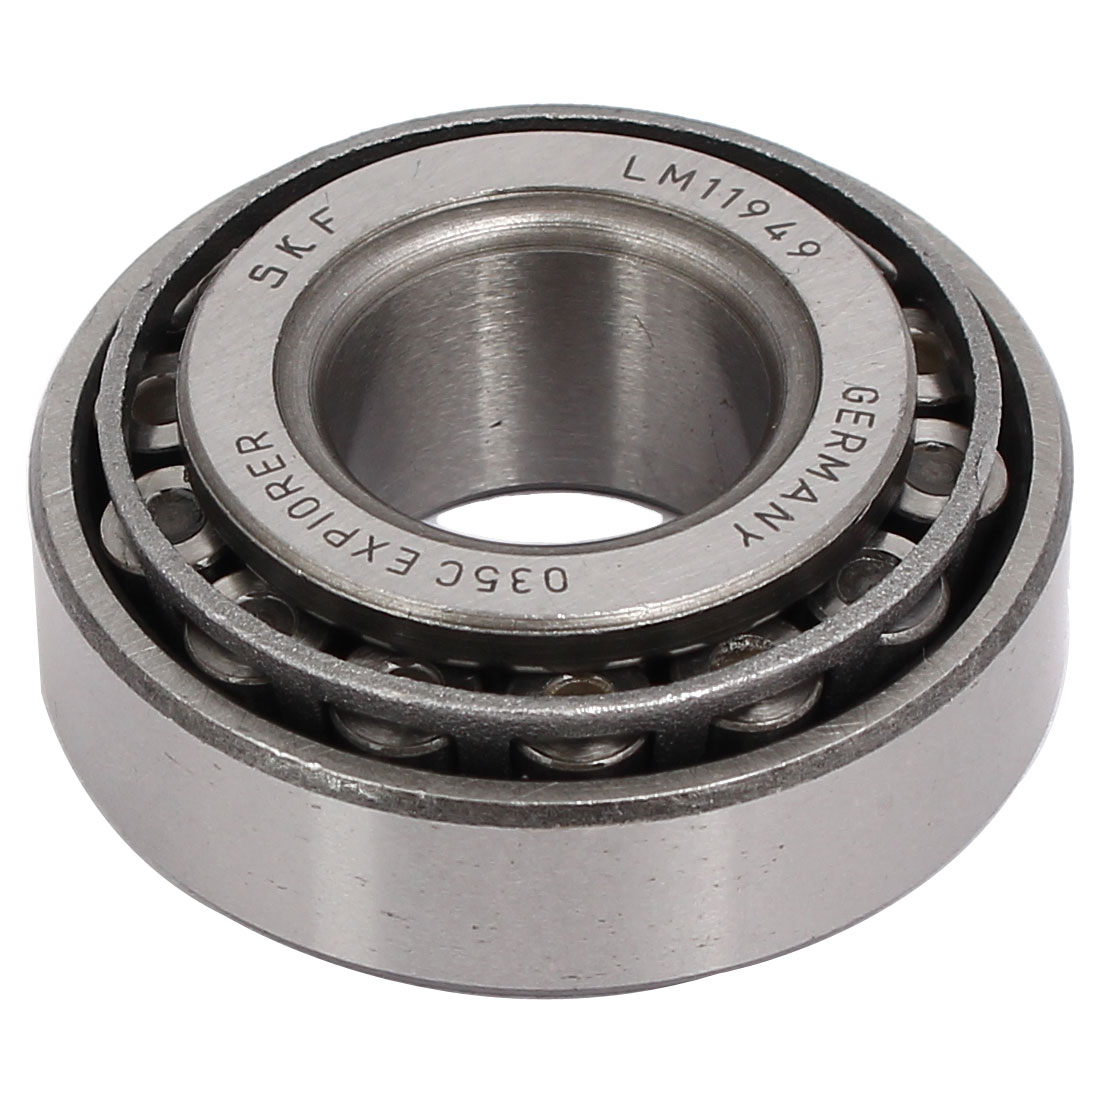 LM11949/10 45mmx19mmx17mm Single Row Tapered Roller Bearing Silver Tone